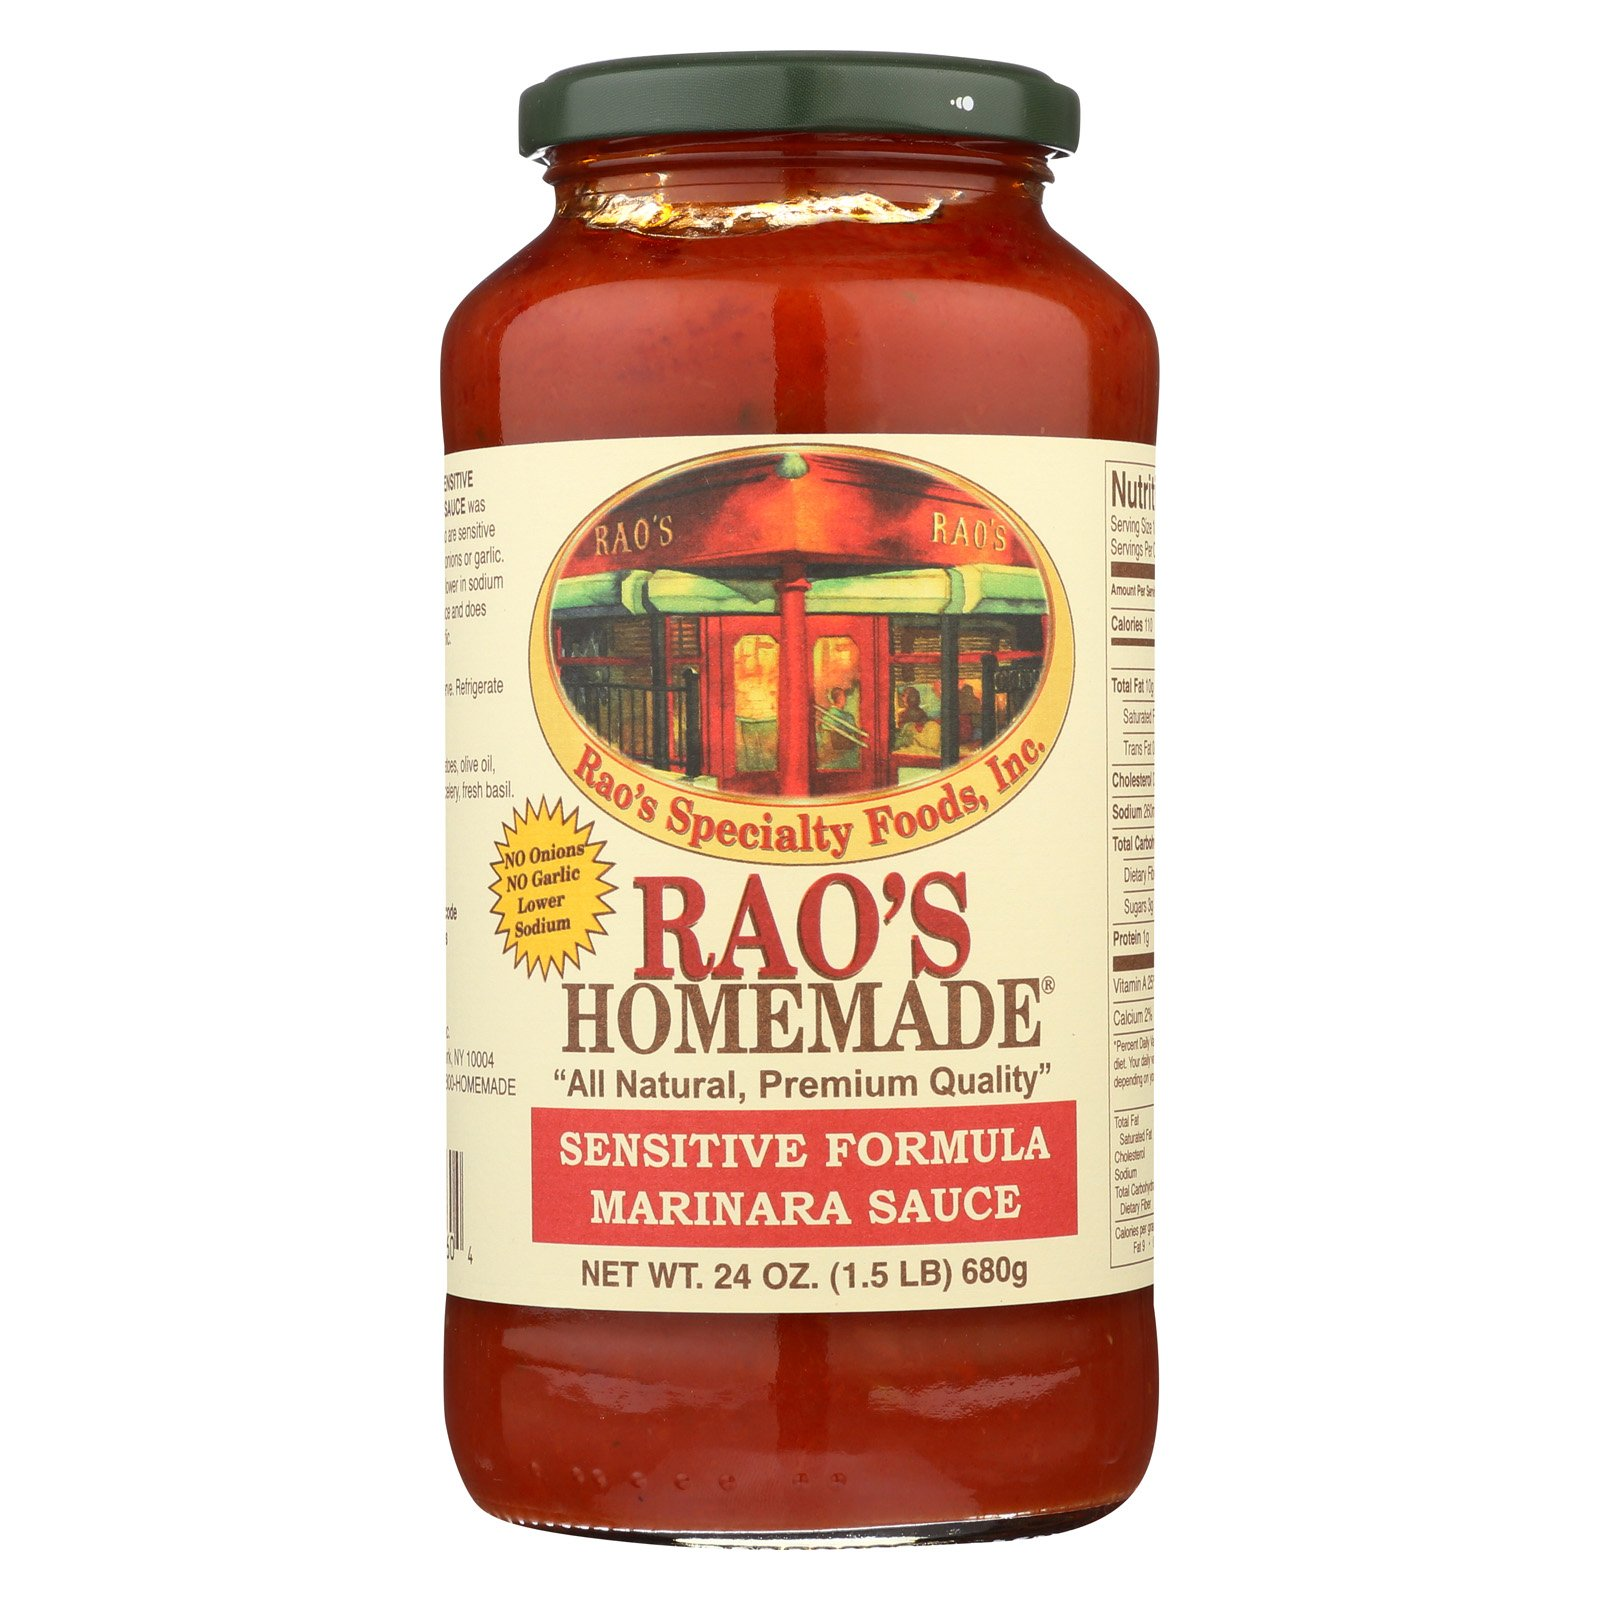 Rao's Specialty Food Homemade Sauce - Sensitive Formula Marinara - Case of 12 - 24 oz. by Raos Specialty Food